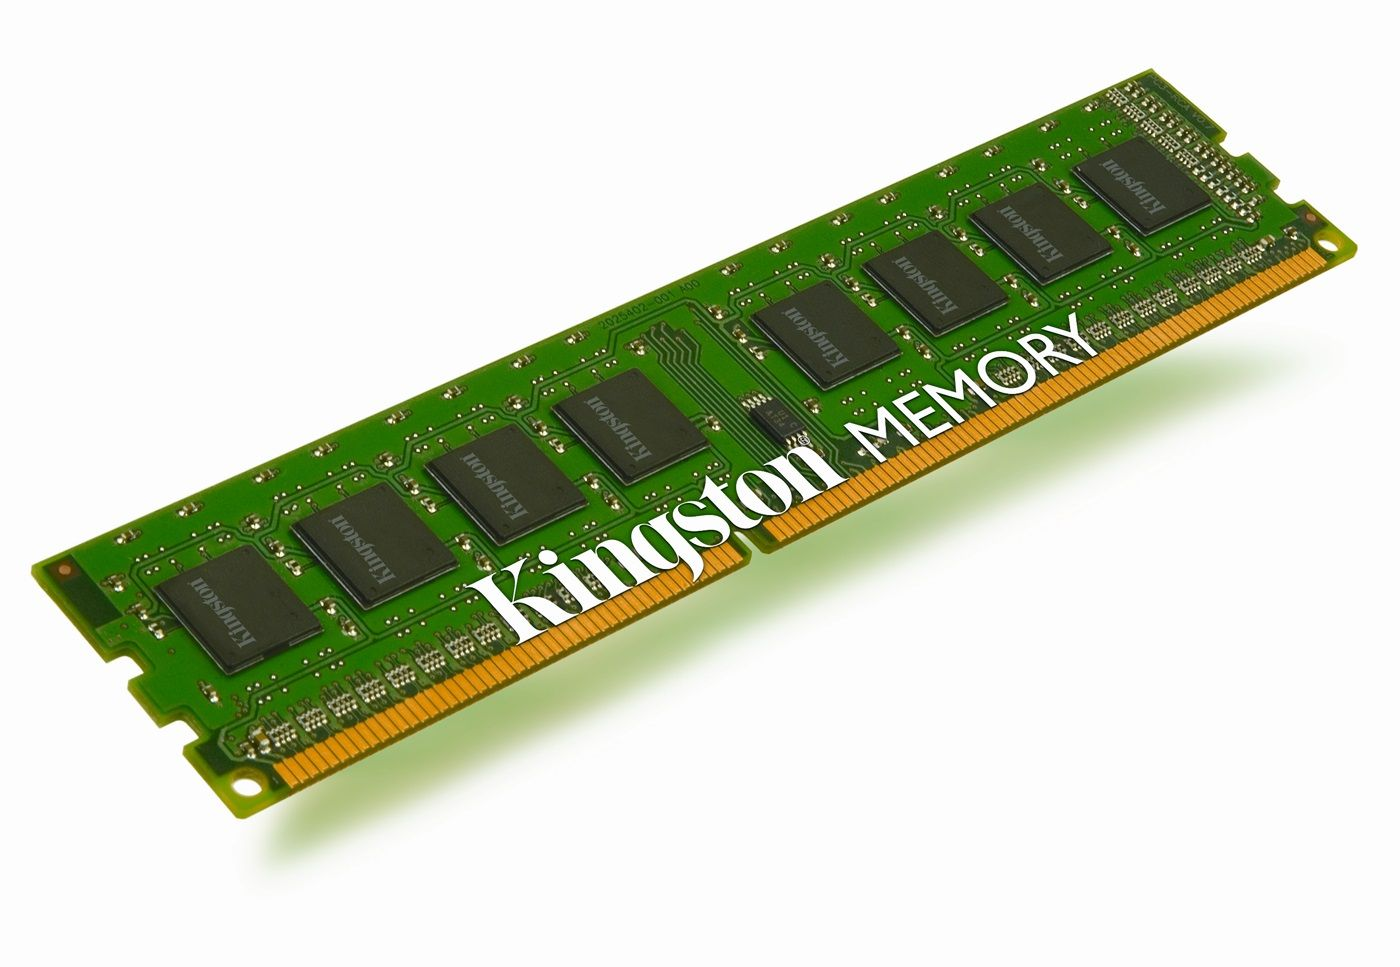 Kingston ValueRAM KVR1333D3N9/4G